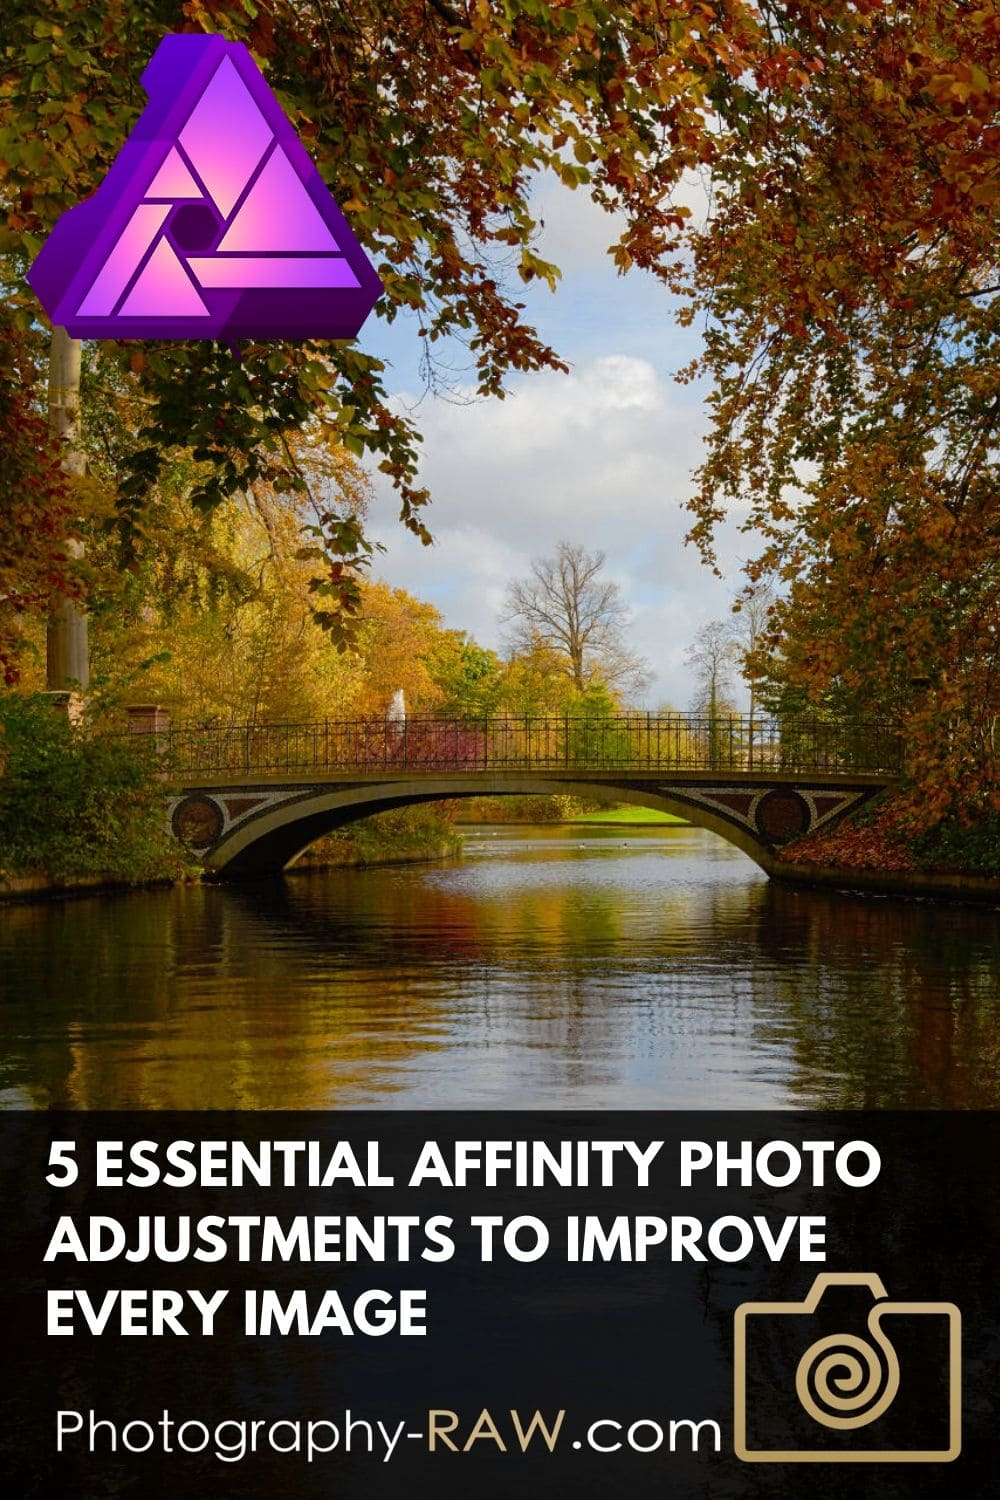 Learn how these essential 5 Affinity Photo adjustments can make your images look awesome in no time. An easy fix for almost every photo.